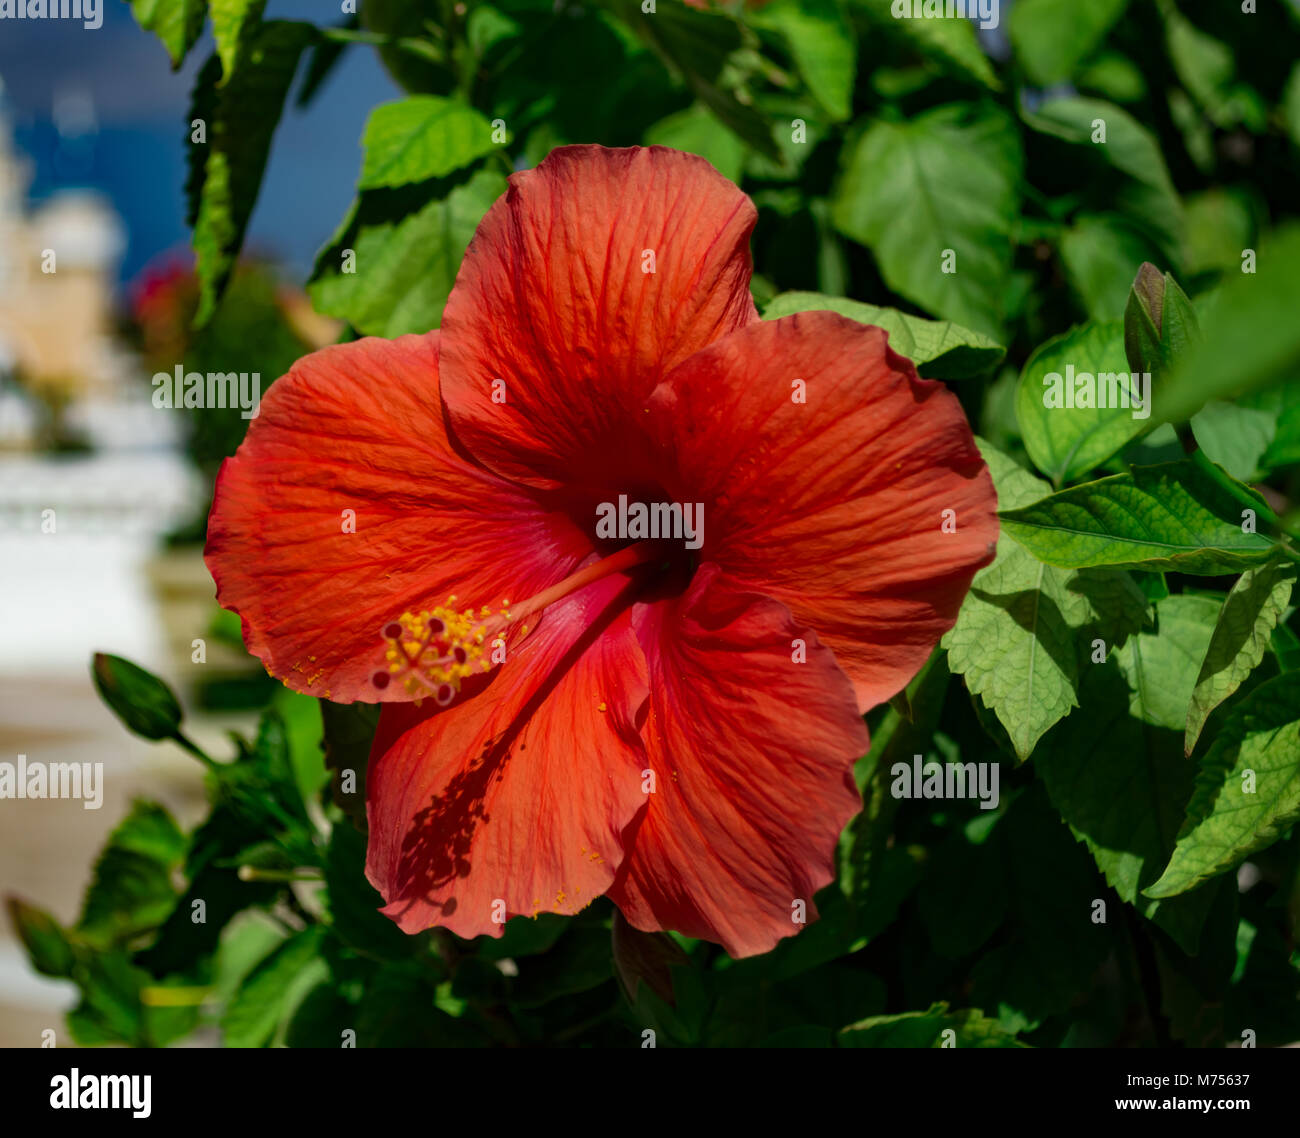 Cool hawaiian word for beautiful flower contemporary wedding and cute hawaiian word for beautiful flower pictures inspiration izmirmasajfo Gallery